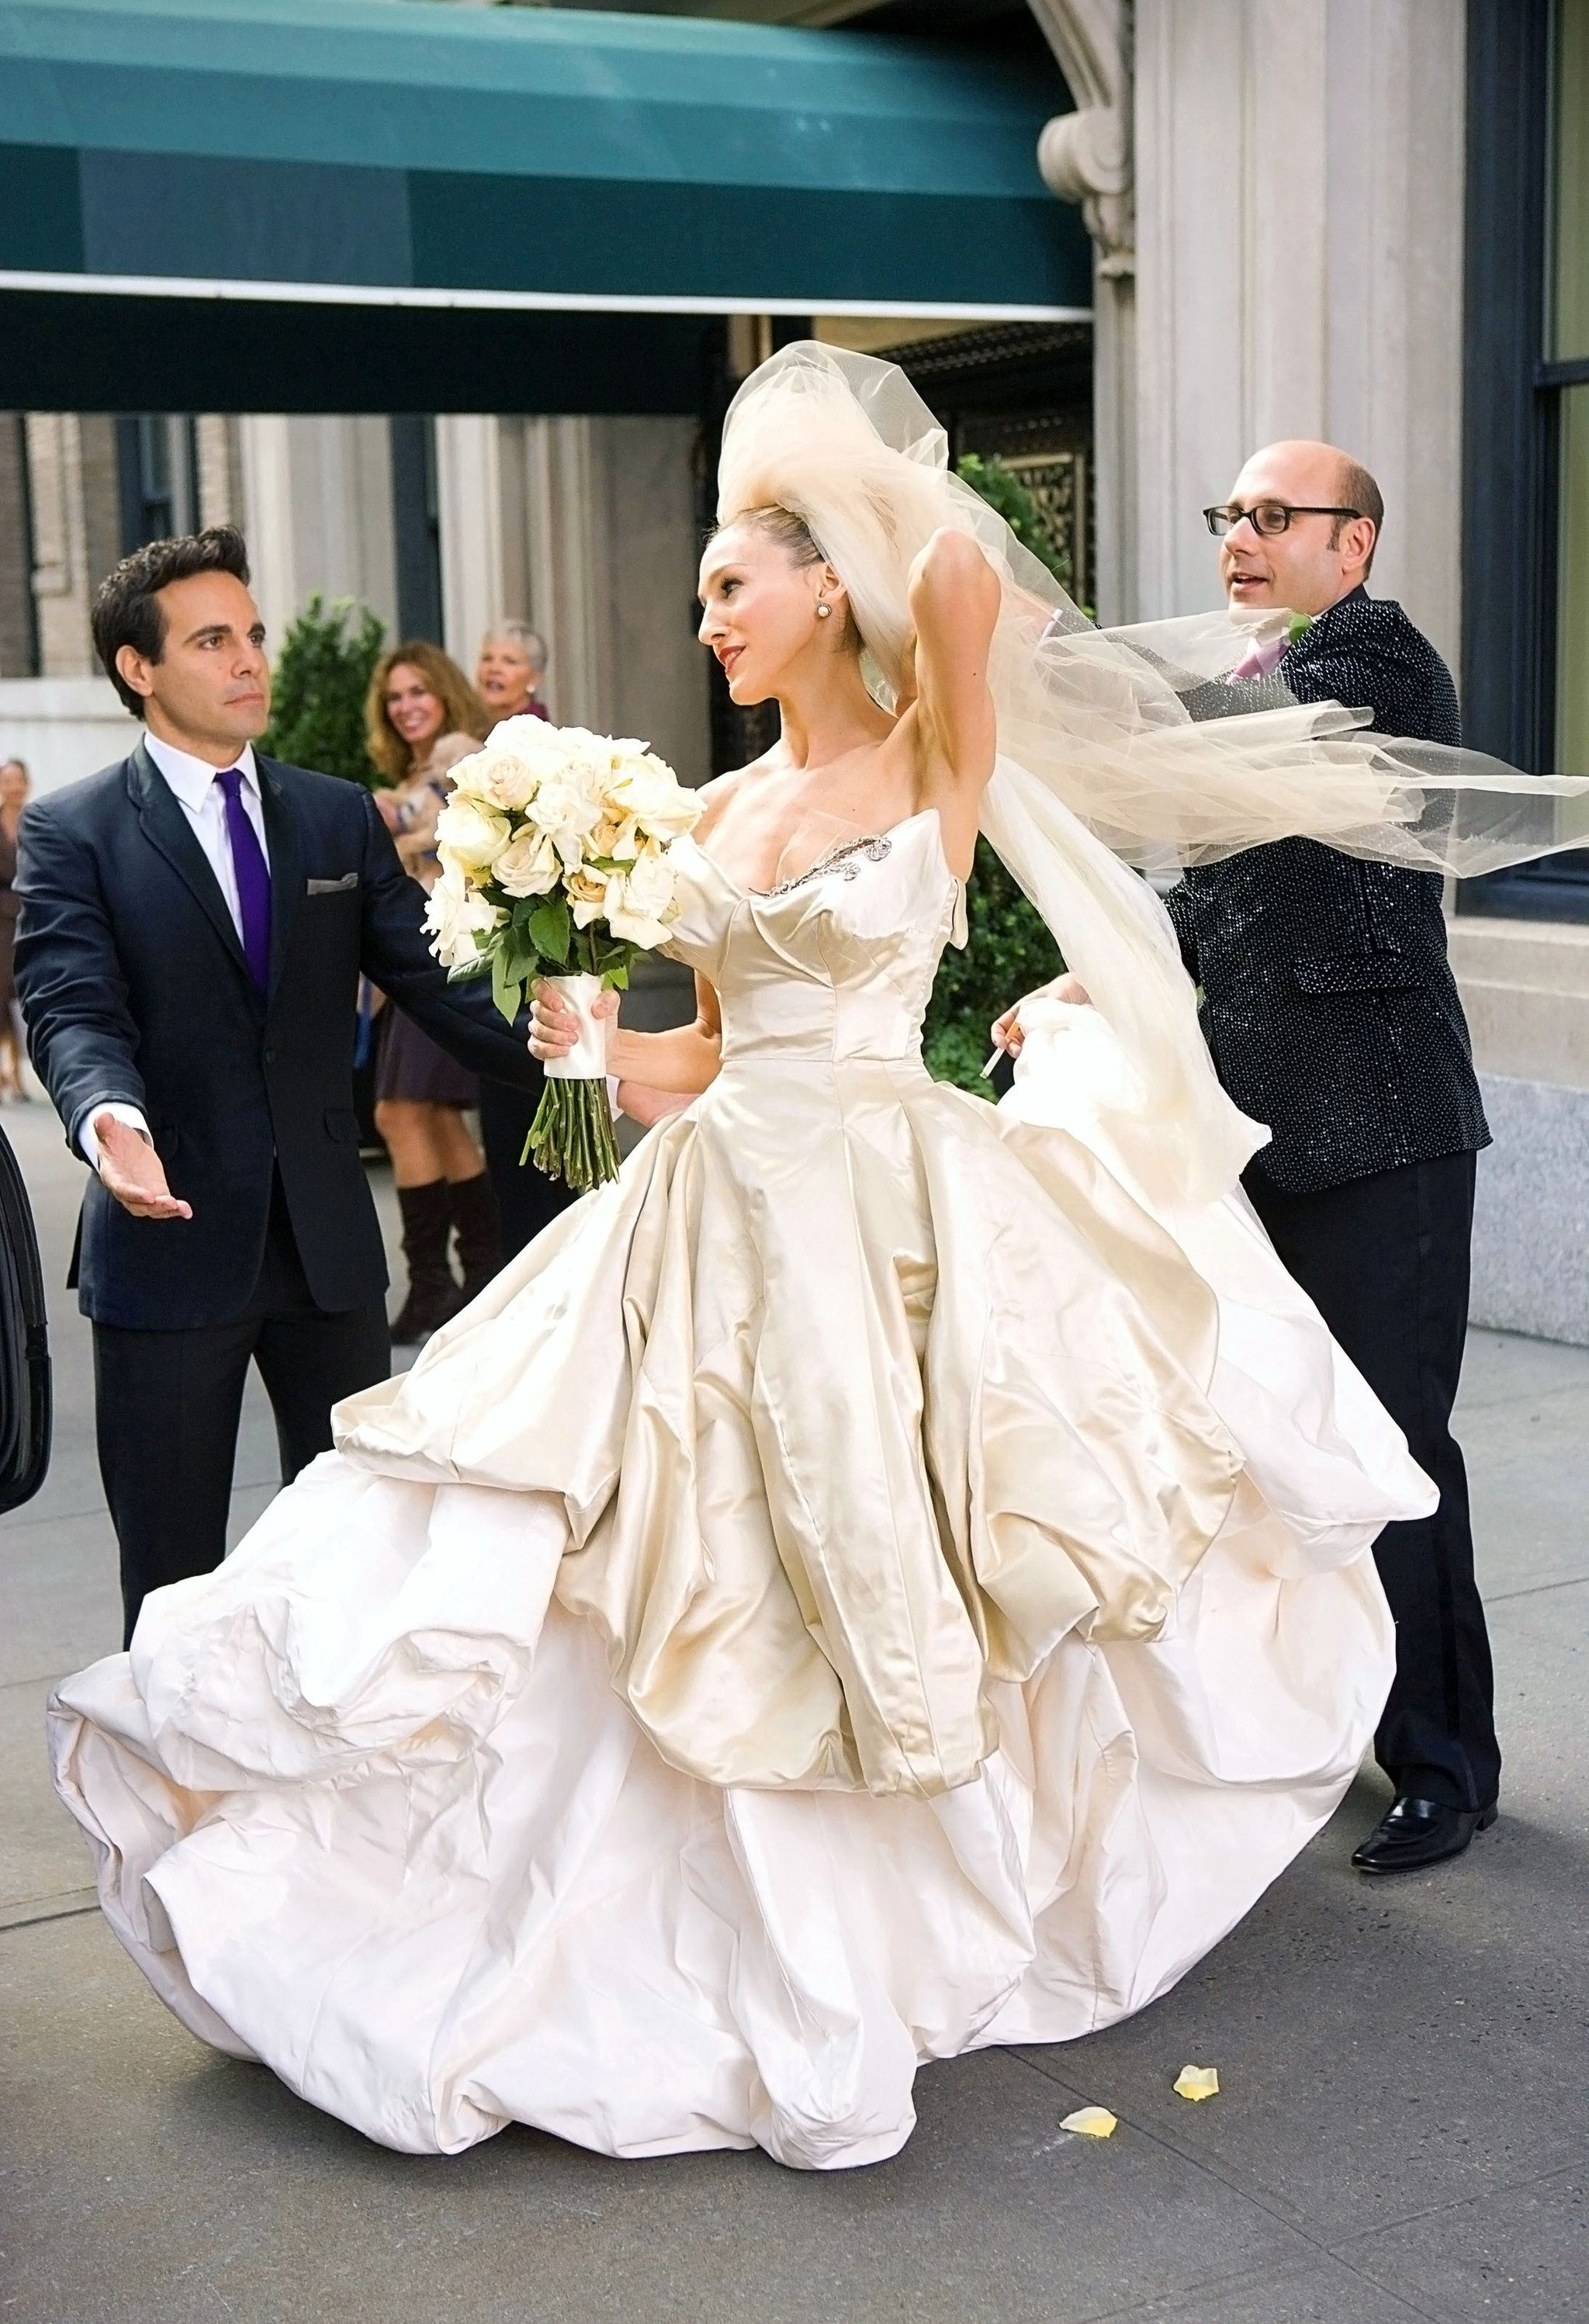 Carrie sex and the city wedding dress